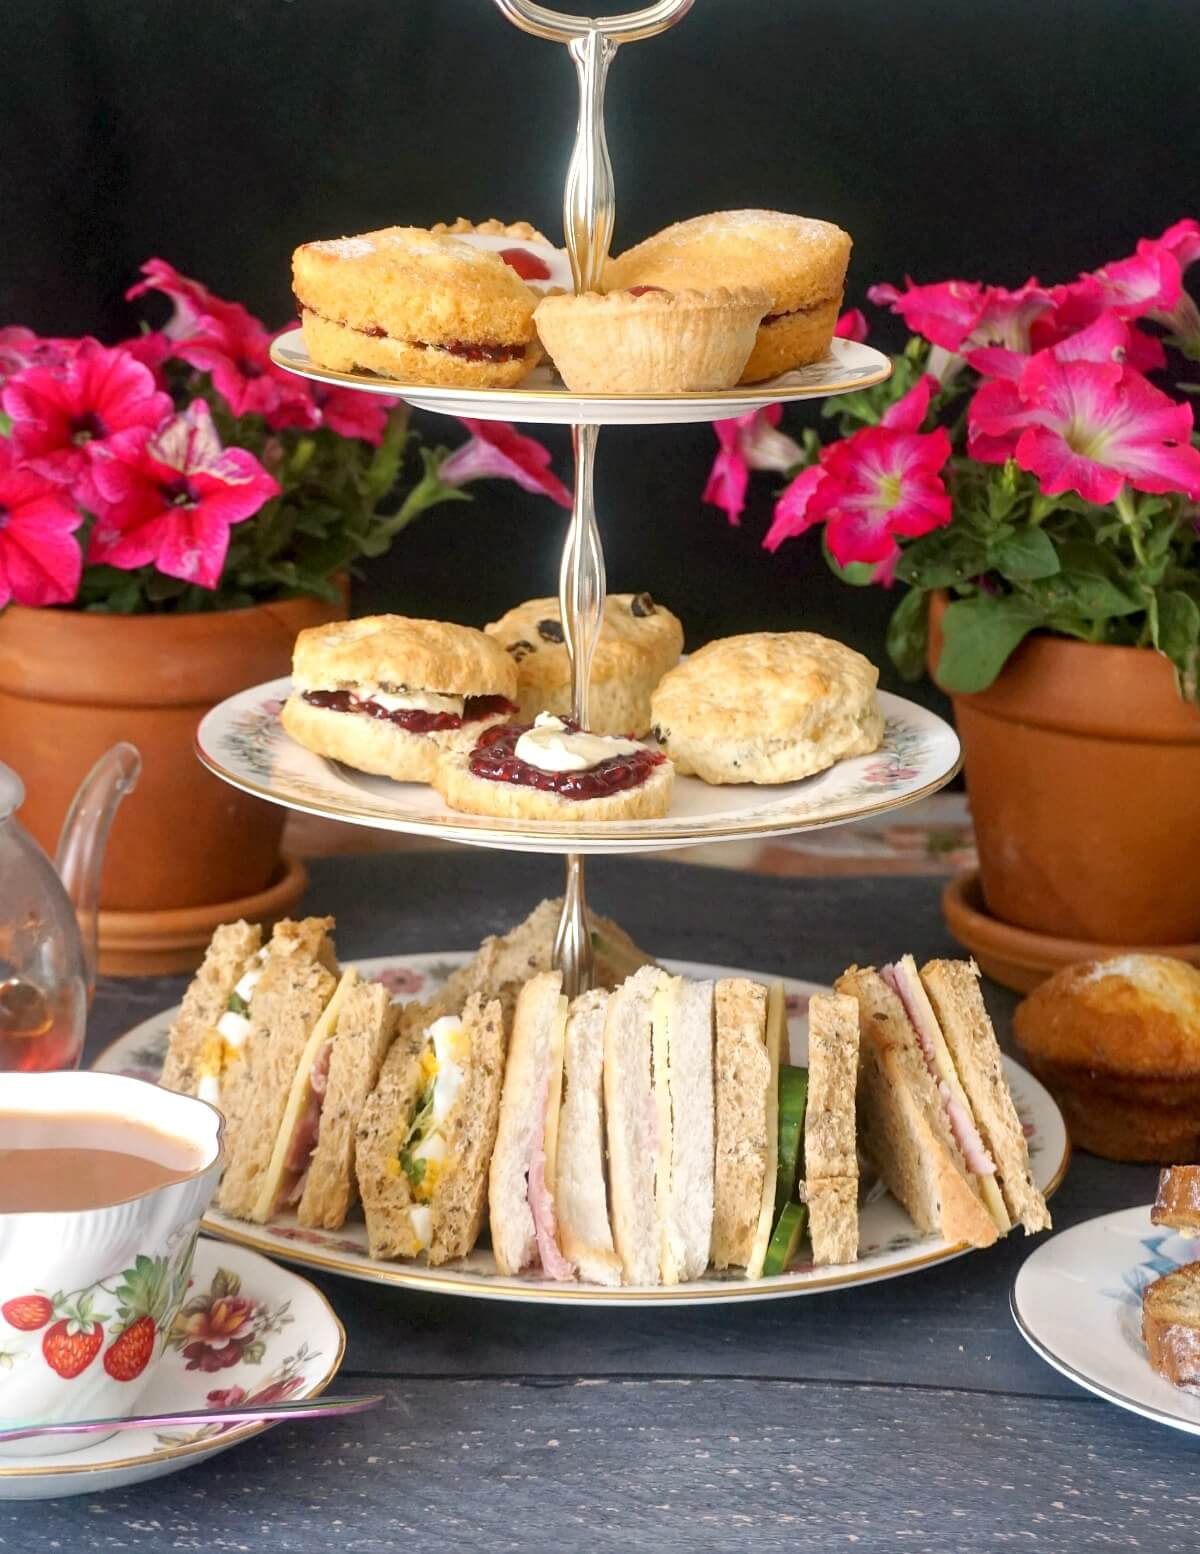 A cake stand with afternoon tea treats, a cup of tea and flowers in the background